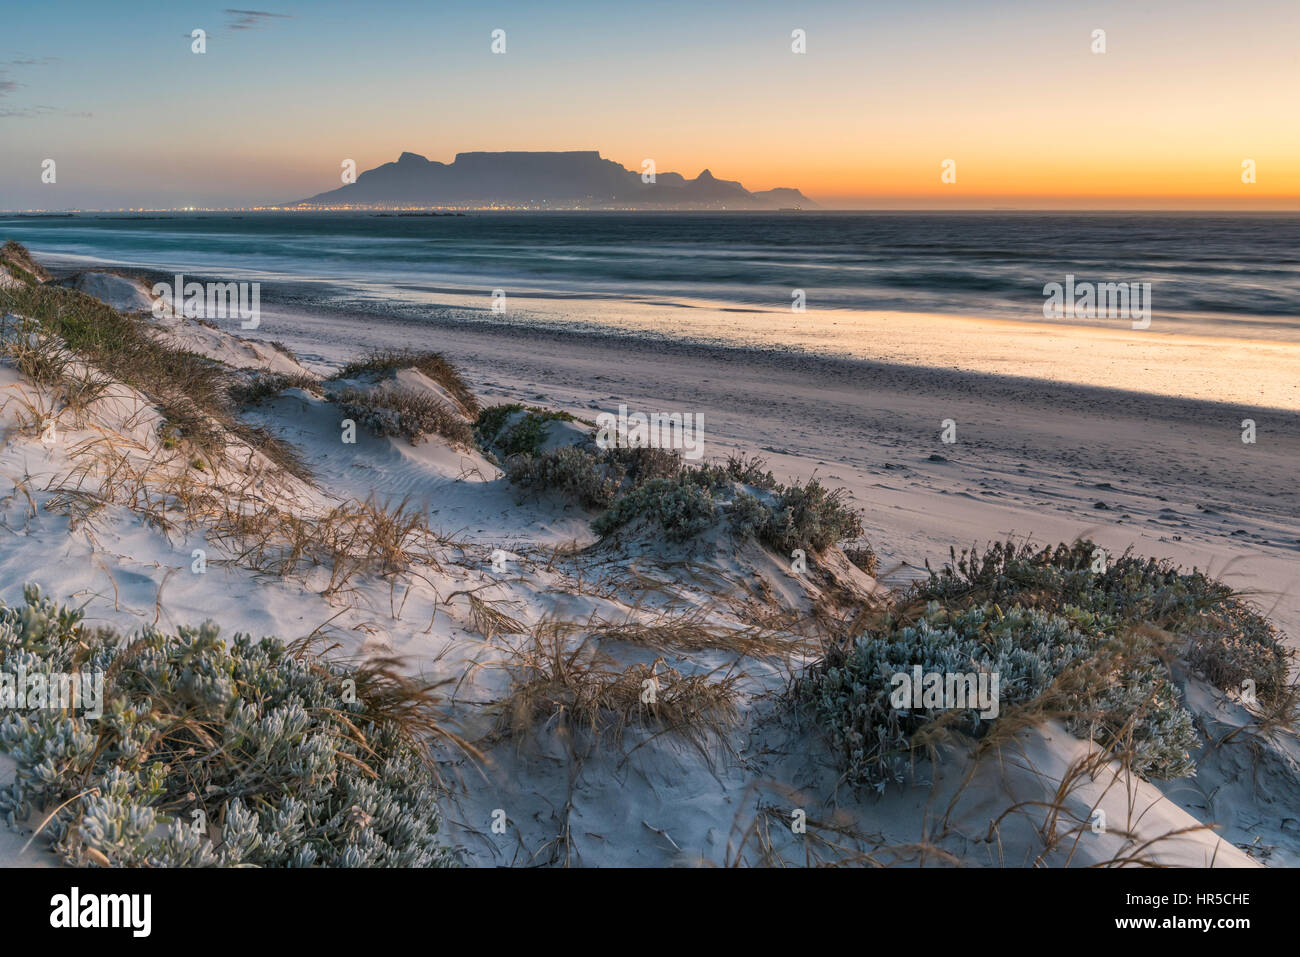 Vue de la Table Mountain au coucher du soleil, de Big Bay, Bloubergstrand, Cape Town, Afrique du Sud Photo Stock